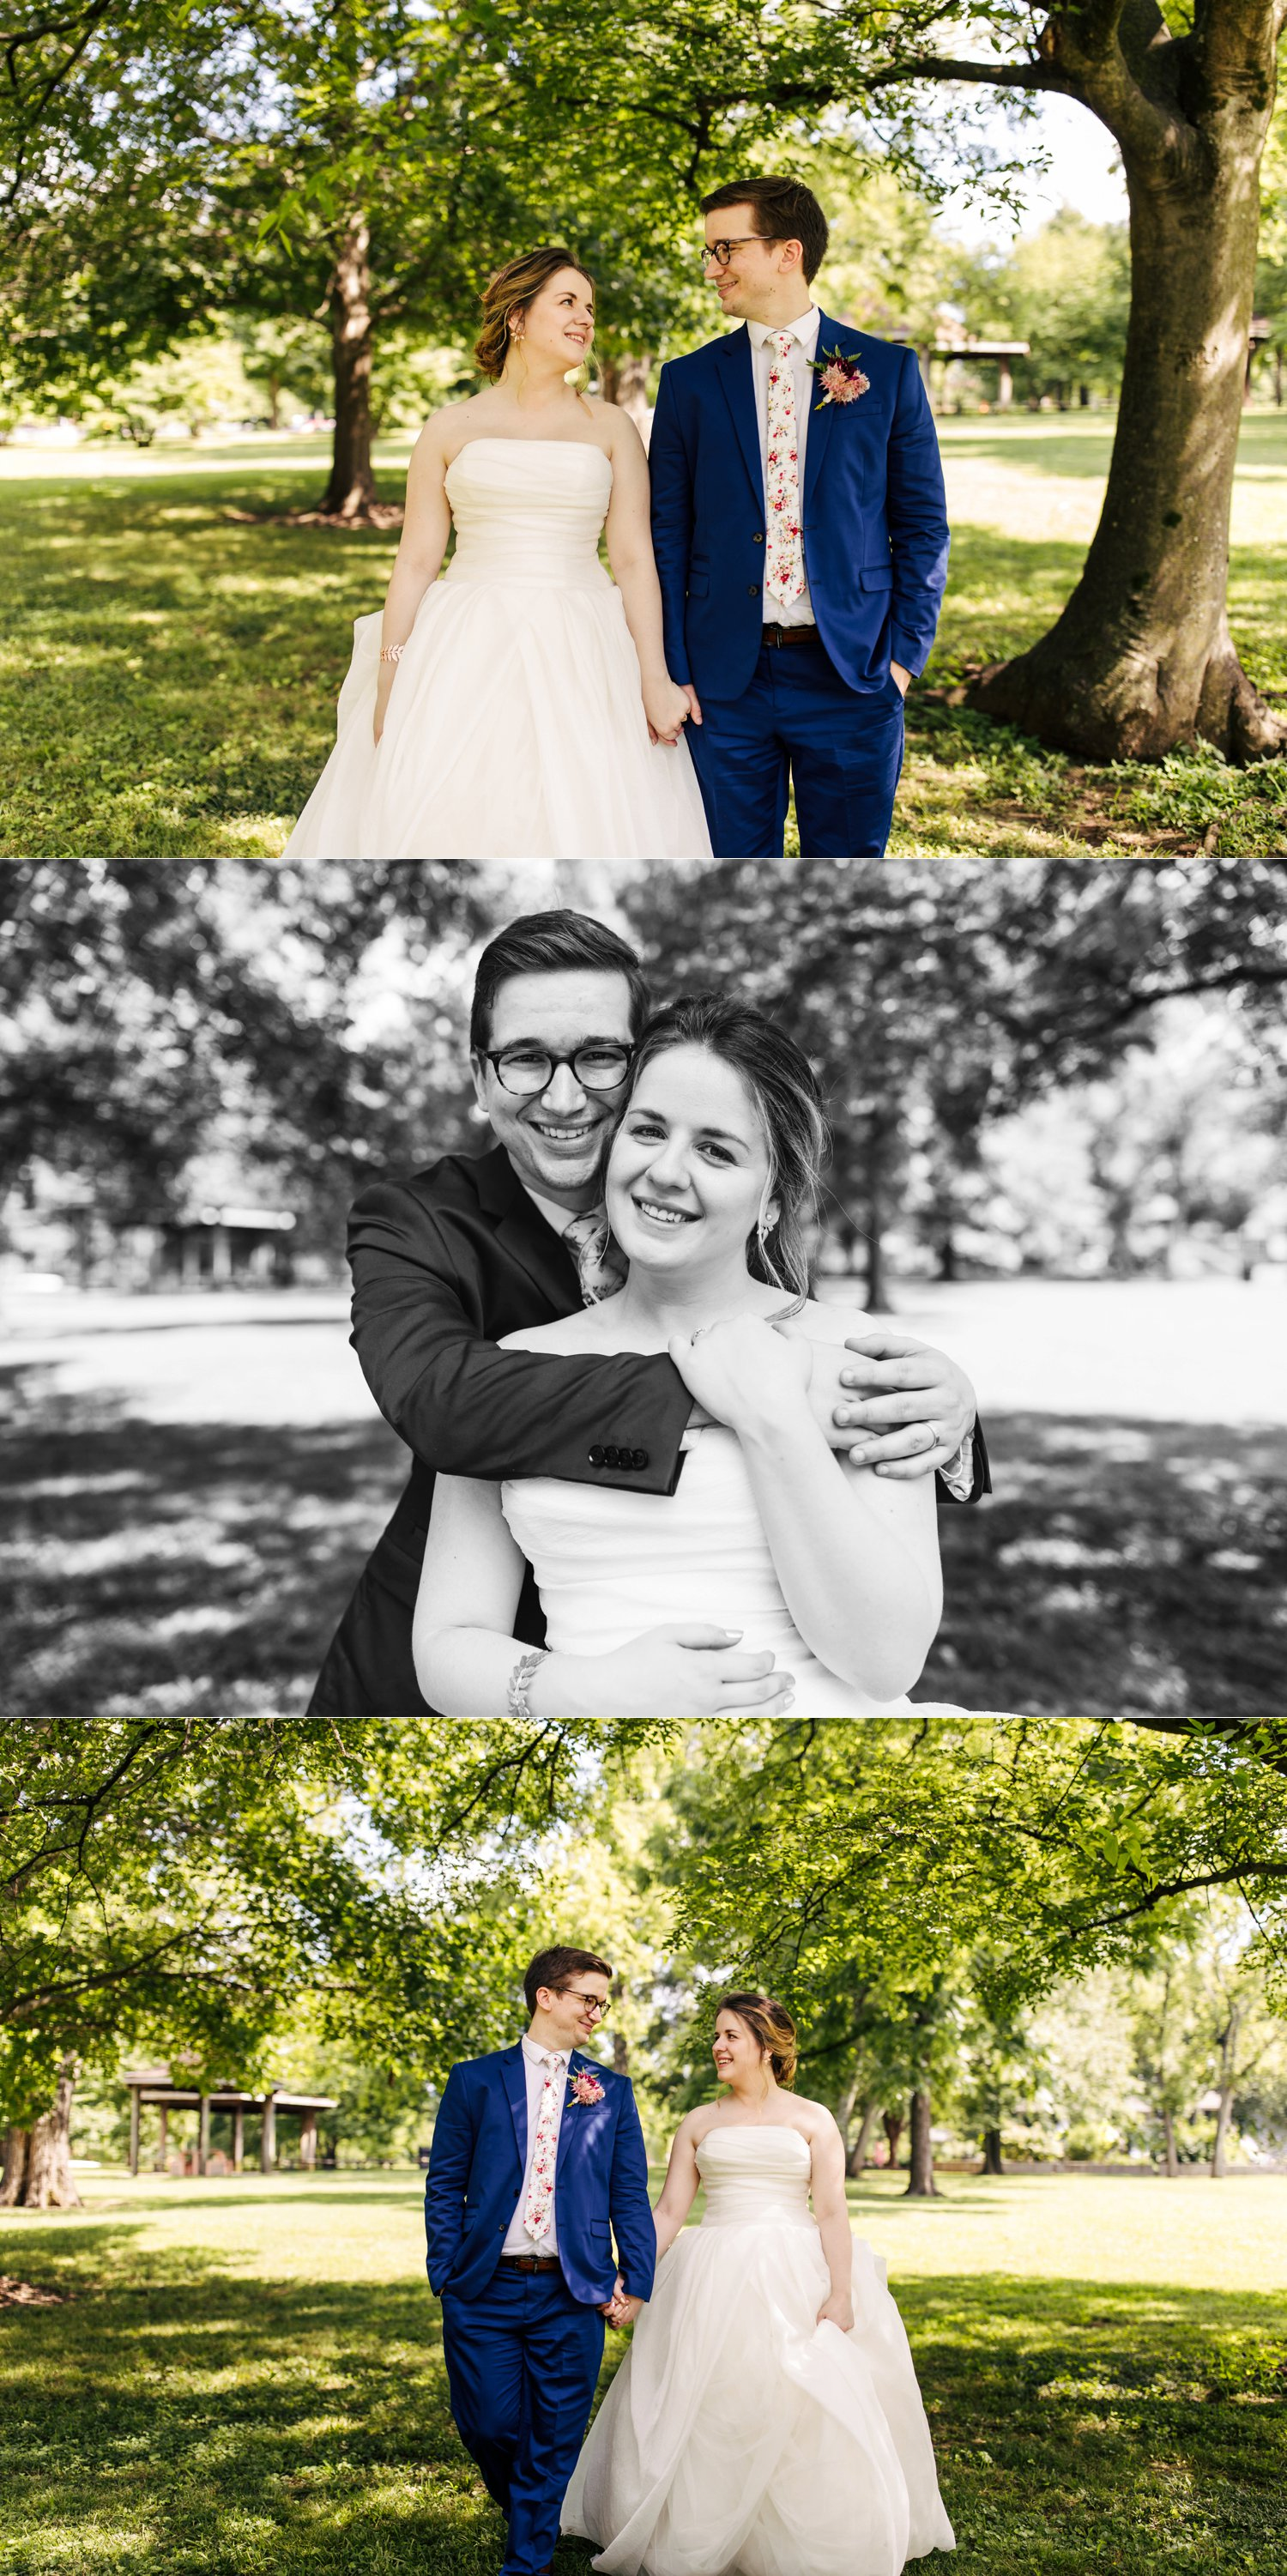 CK-Photo-Nashville-engagement-wedding-photographer-ruby